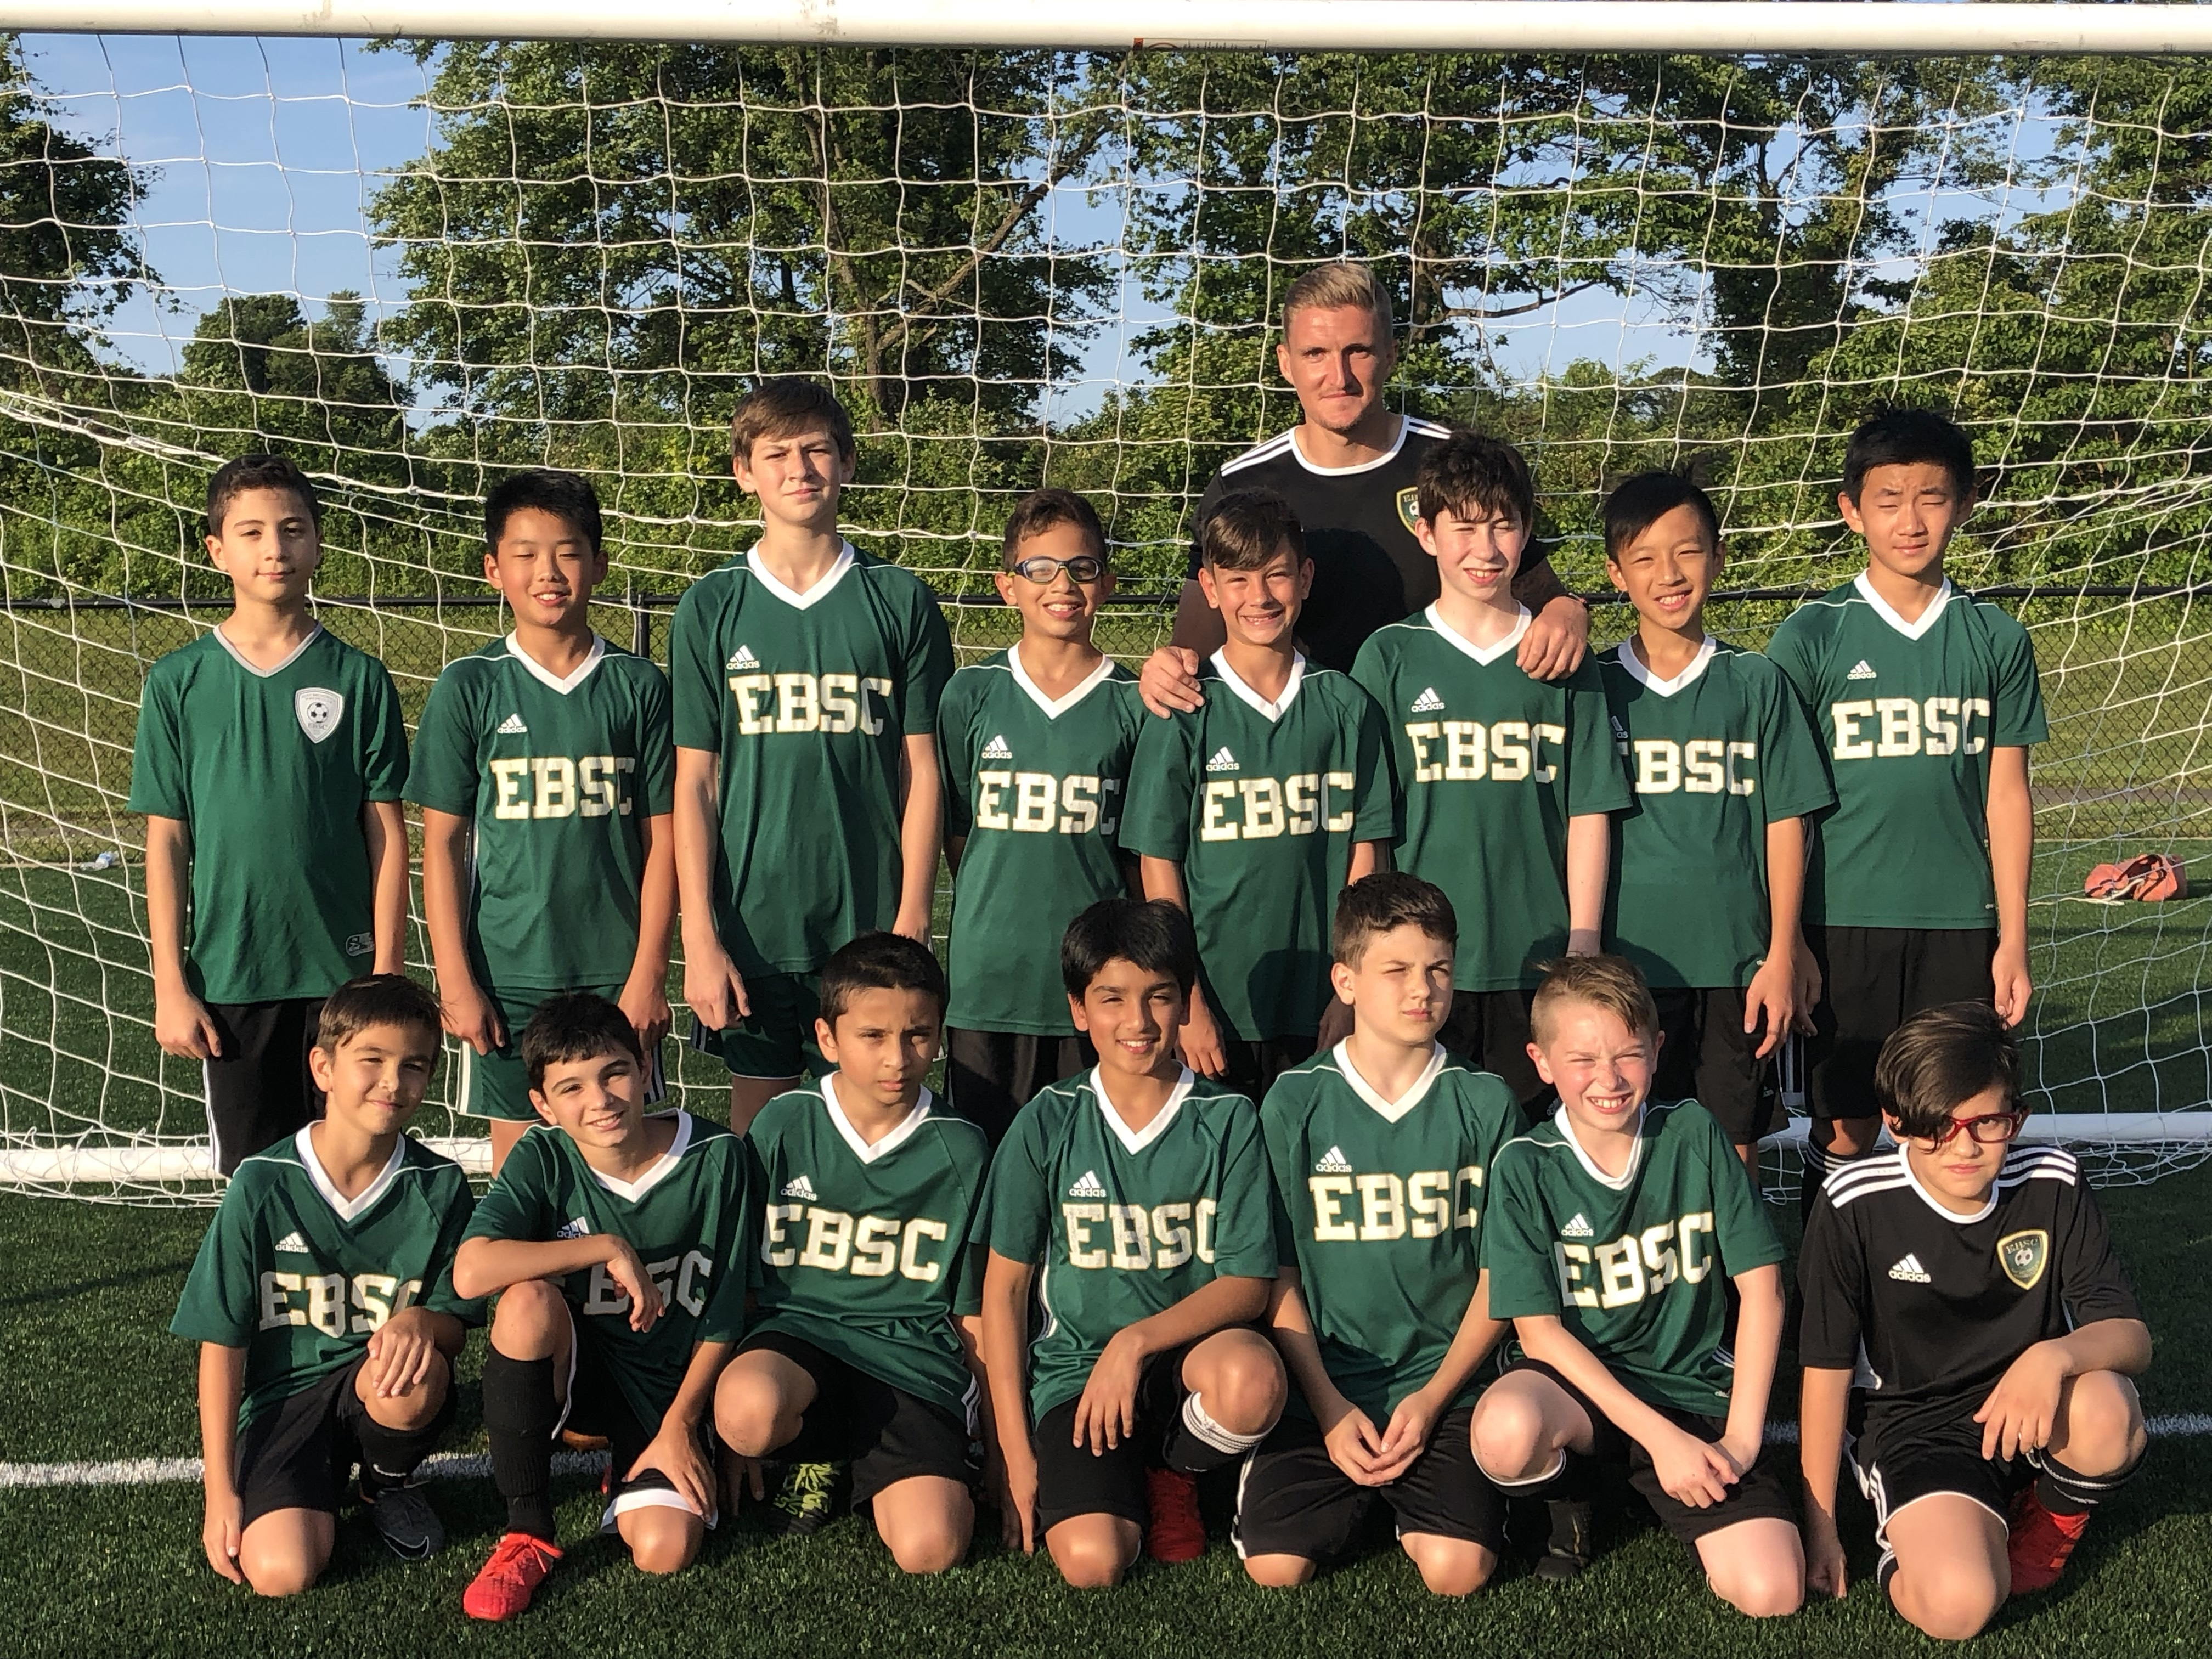 Congratulations to Coach Gary and the U12 Boys